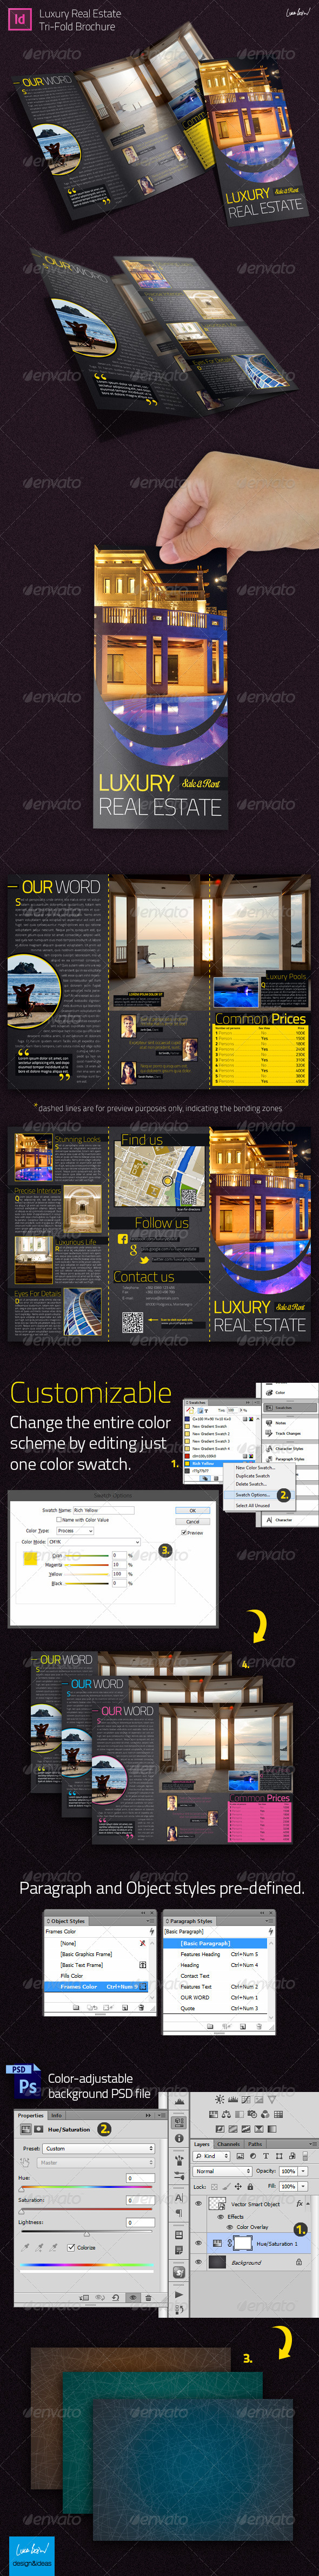 GraphicRiver Luxury Real Estate Indesign Trifold Brochure 5356889